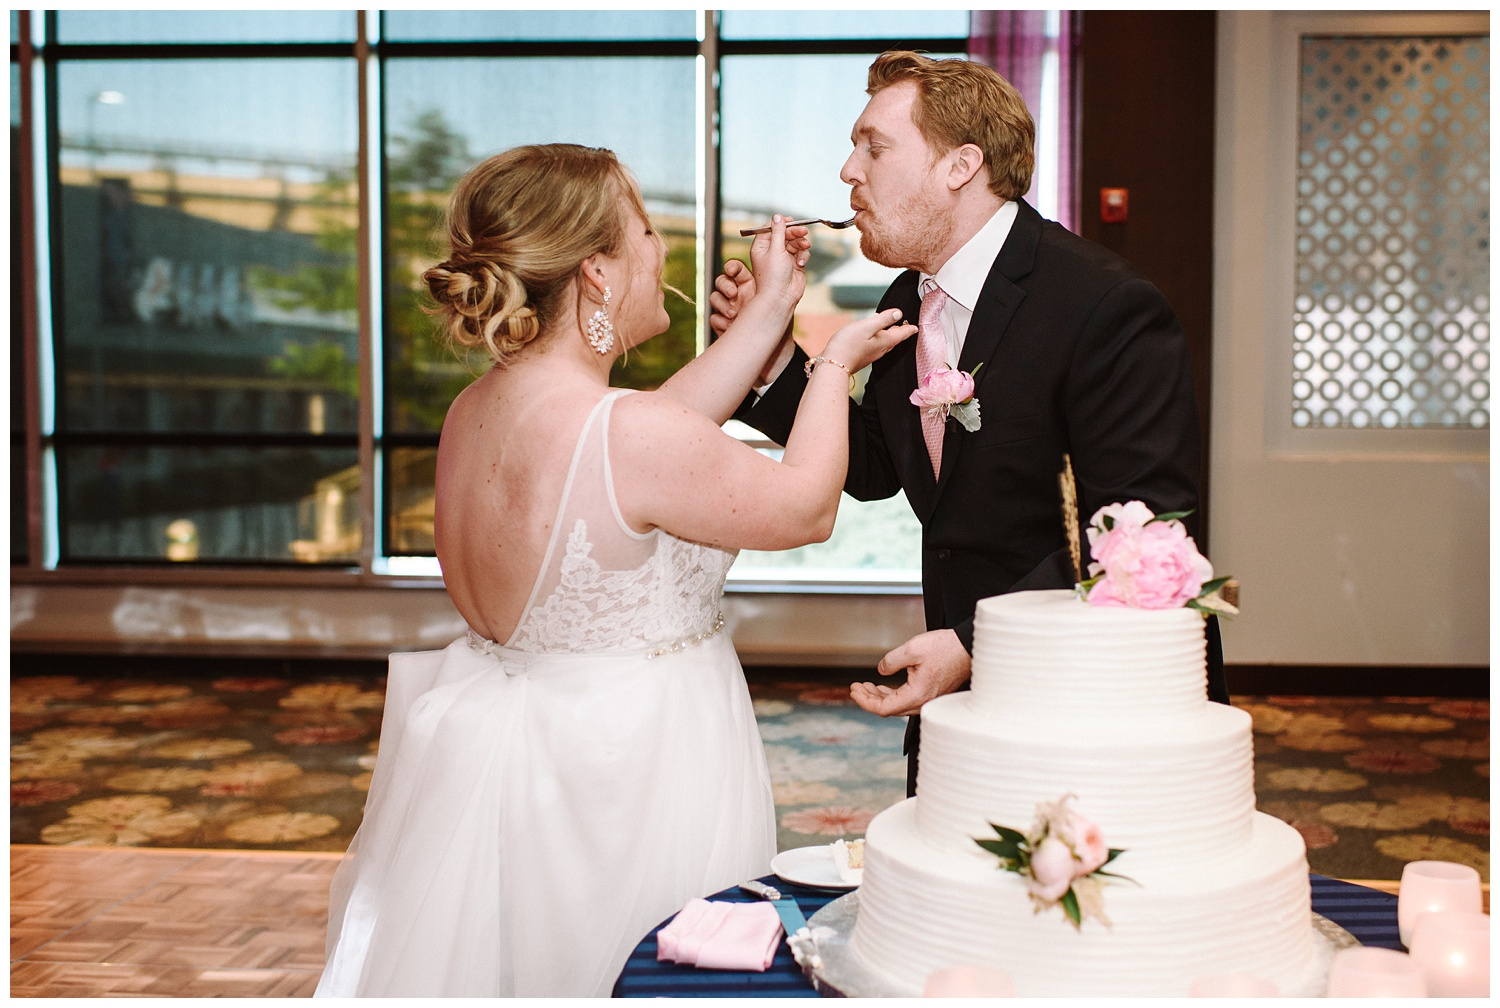 Renaissance Hotel Gillette Stadium Wedding Photographer105.jpg